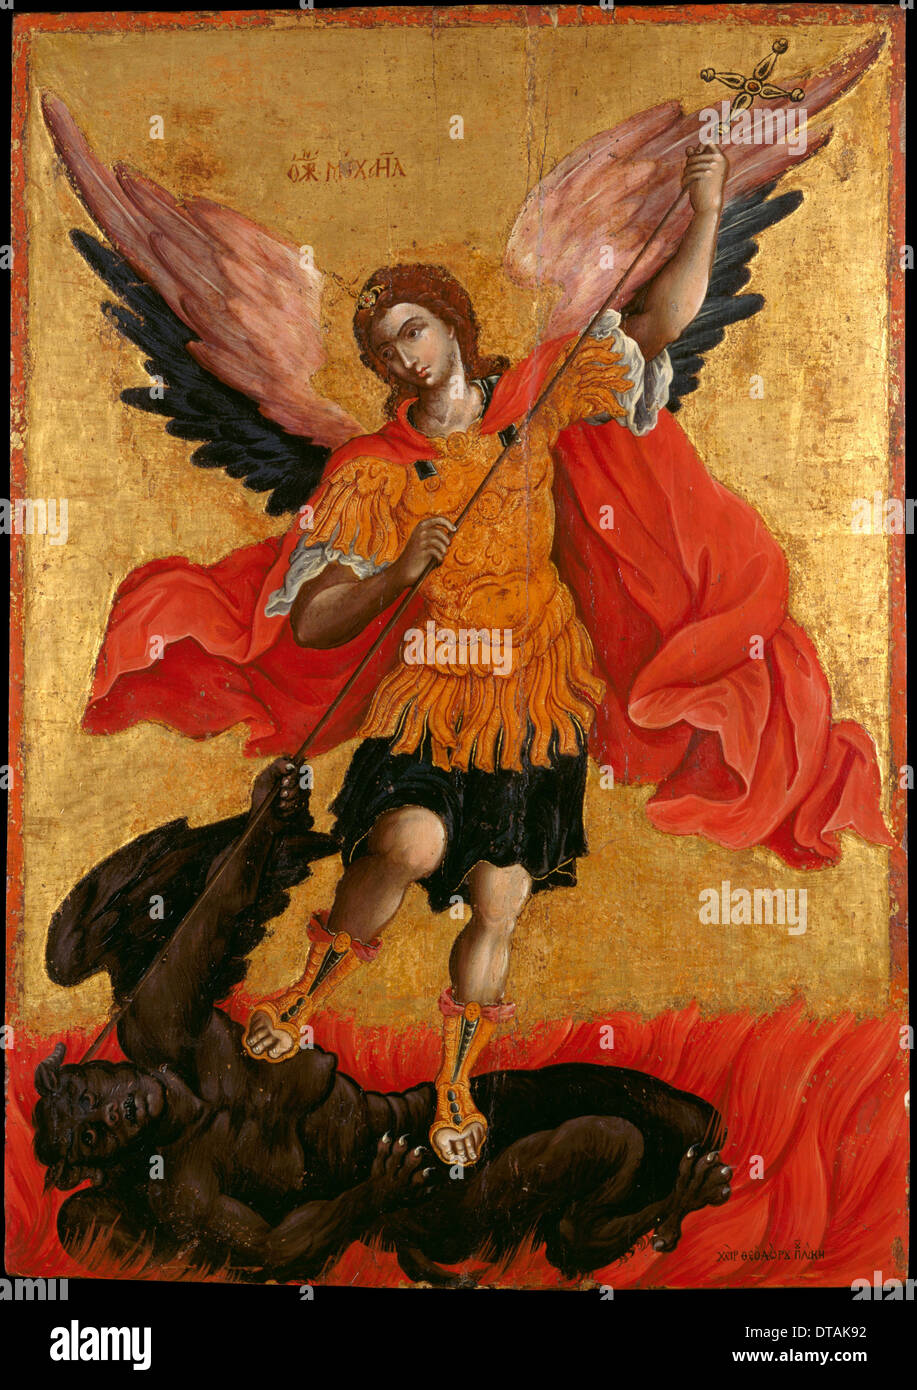 The Archangel Michael, Second Half of the 17th cen.. Artist: Poulakis, Theodore (1622-1692) - Stock Image